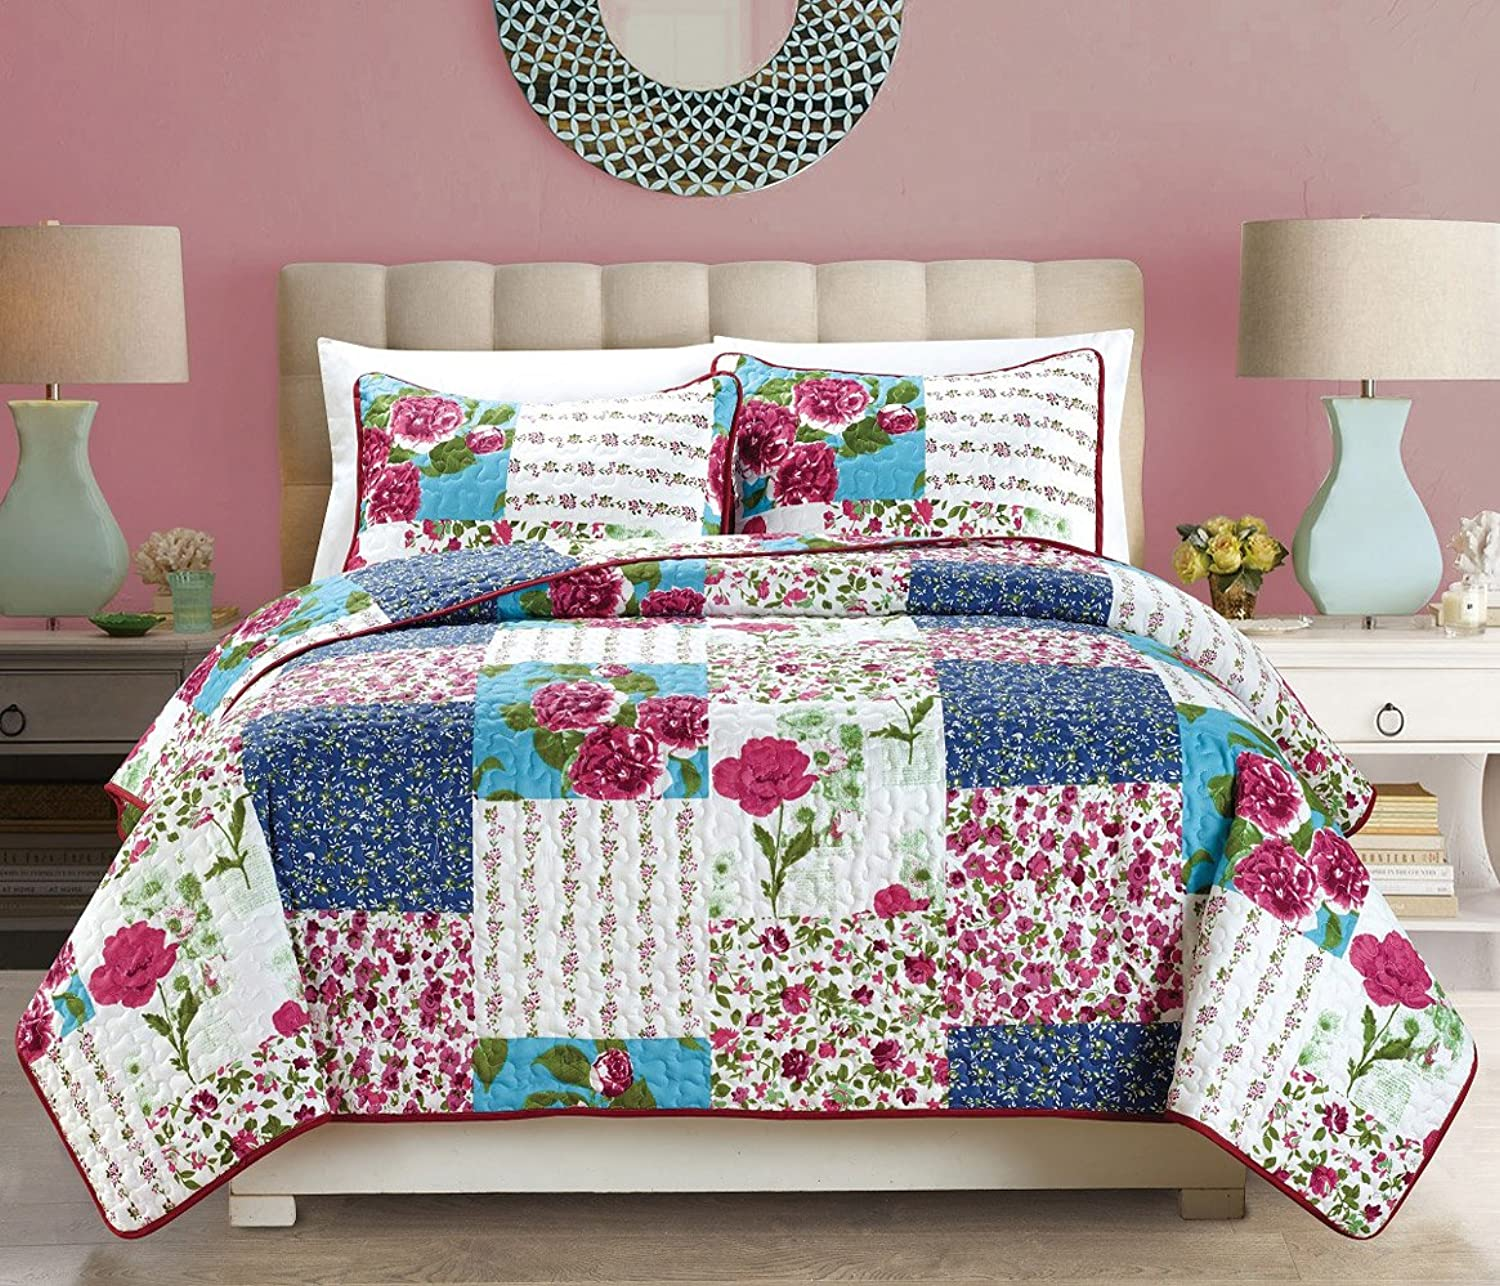 2-Piece Fine printed Country pink Oversize (66  X 95 ) Quilt Set Reversible Floral Bedspread Coverlet TWIN   TWIN XL SIZE Bed Cover (Navy bluee, Burgundy, Red, White, Green, Turquoise)